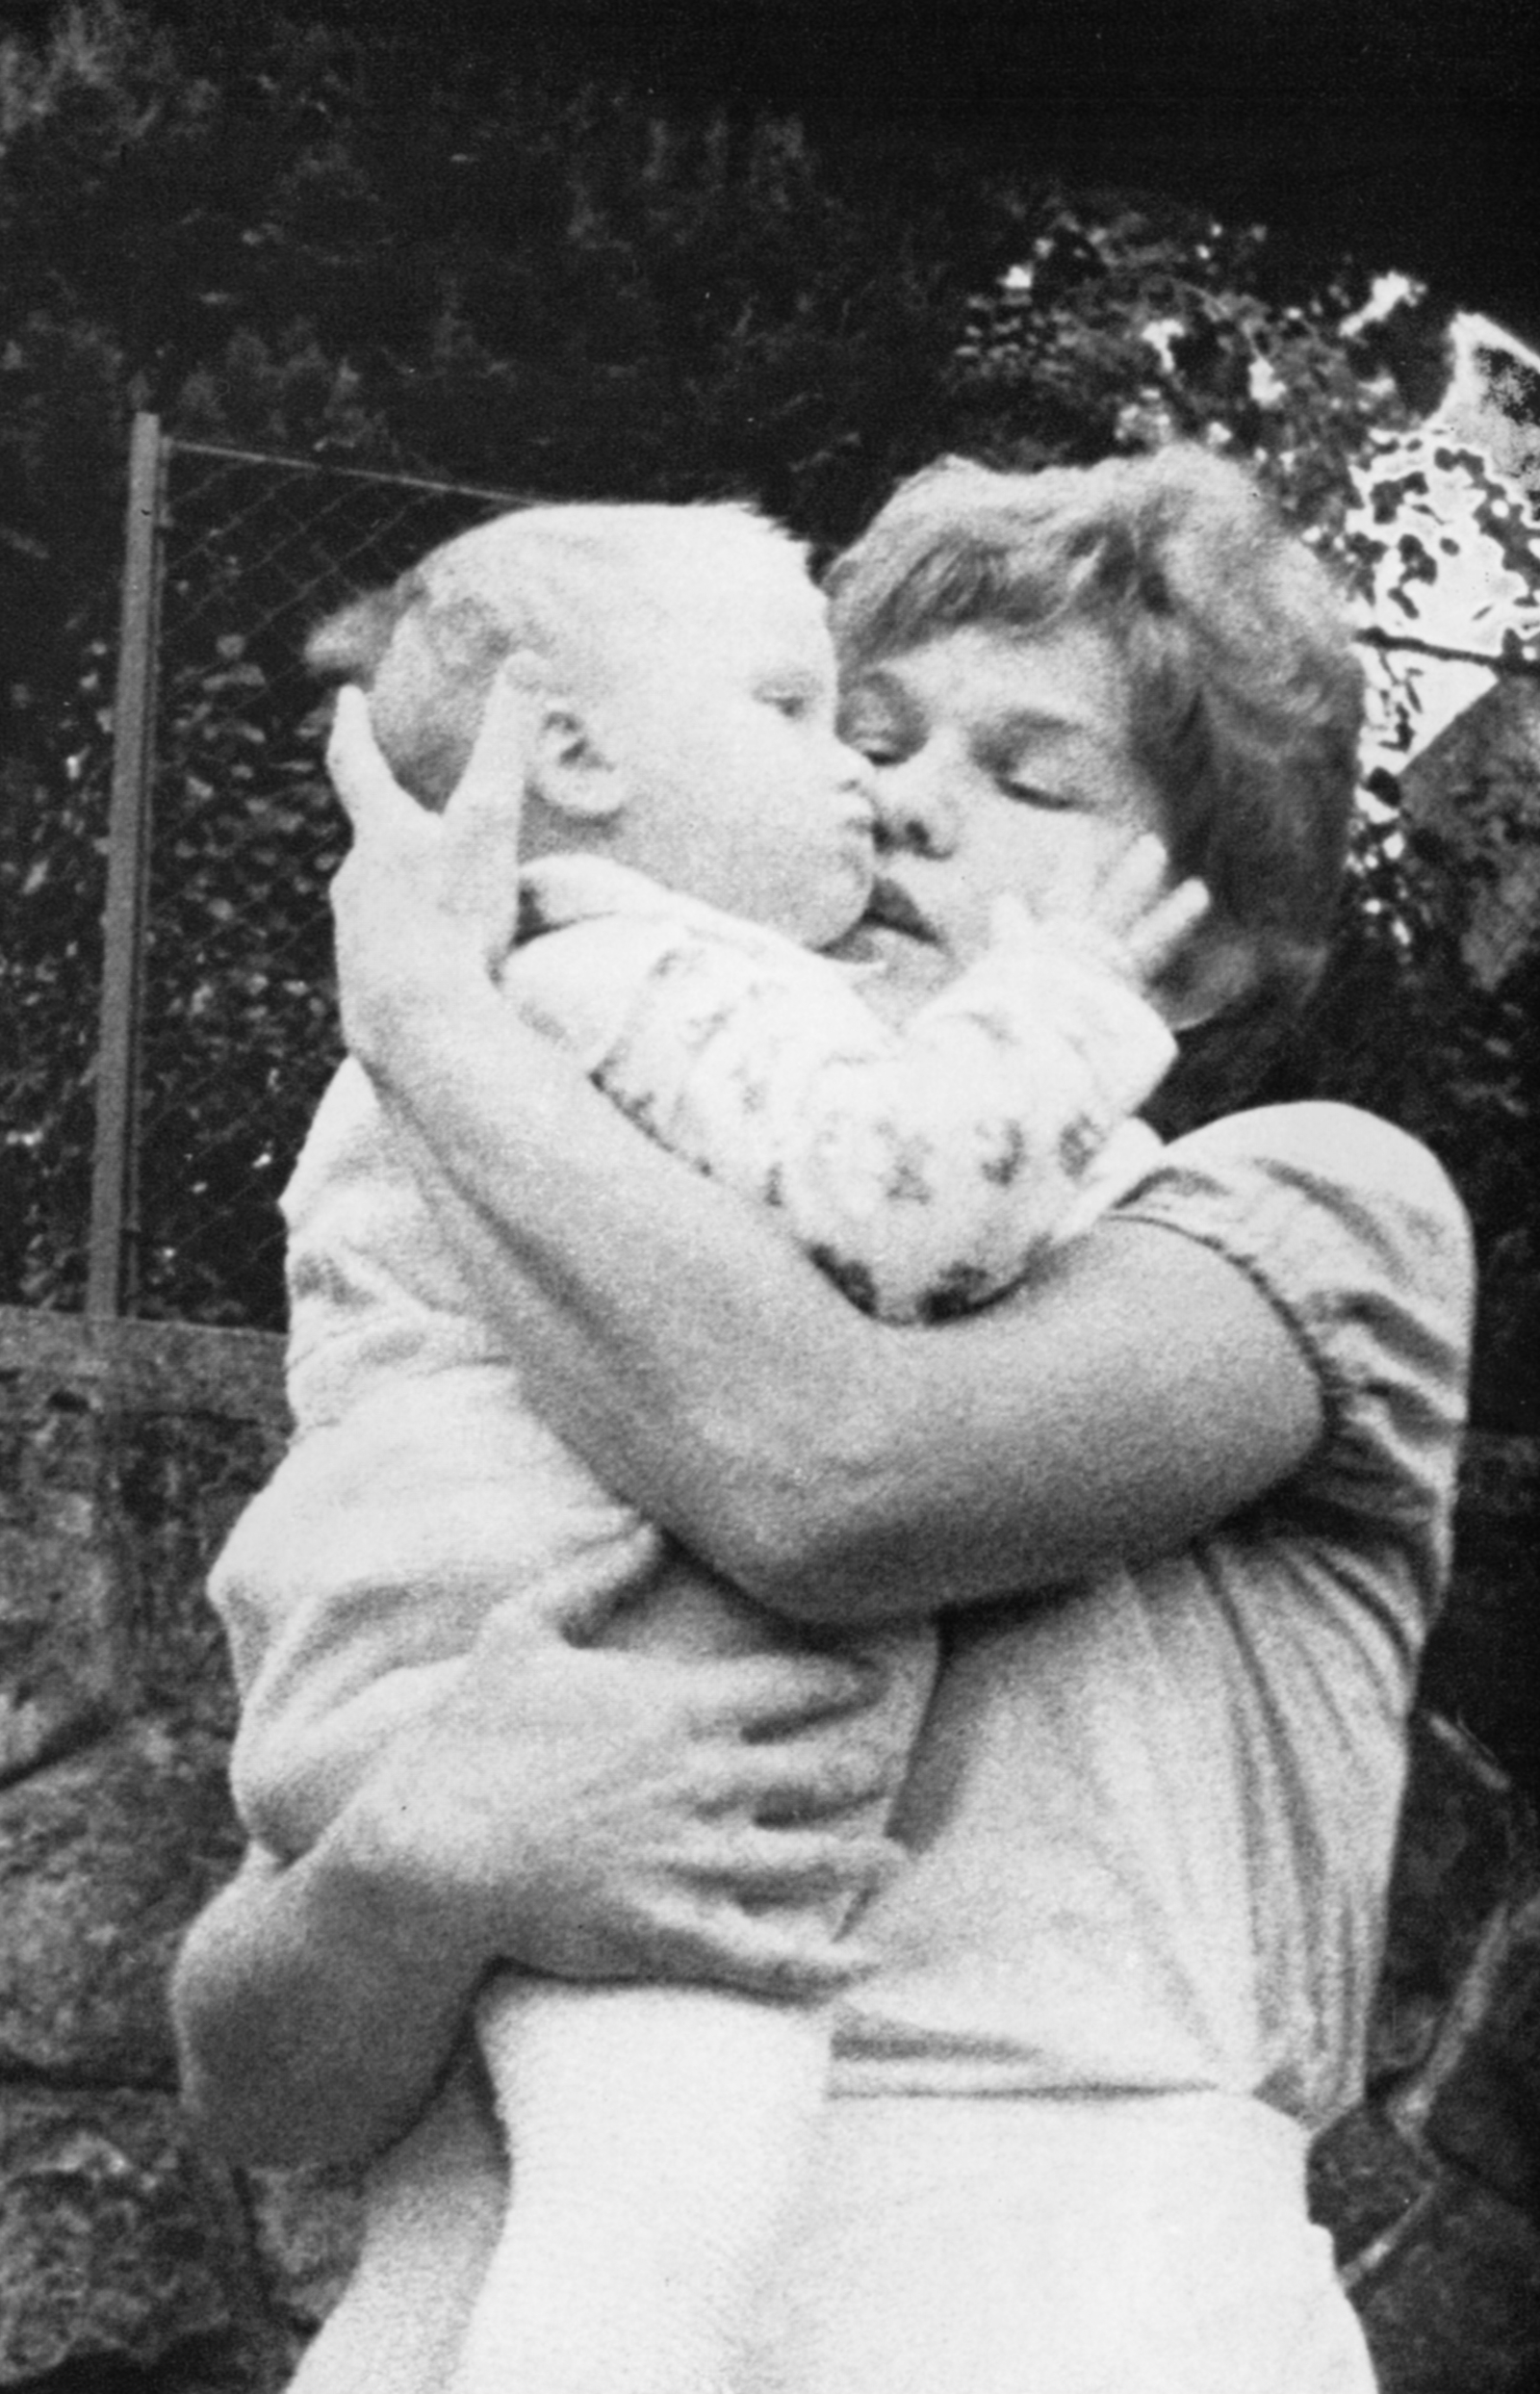 A woman with a baby in her arms